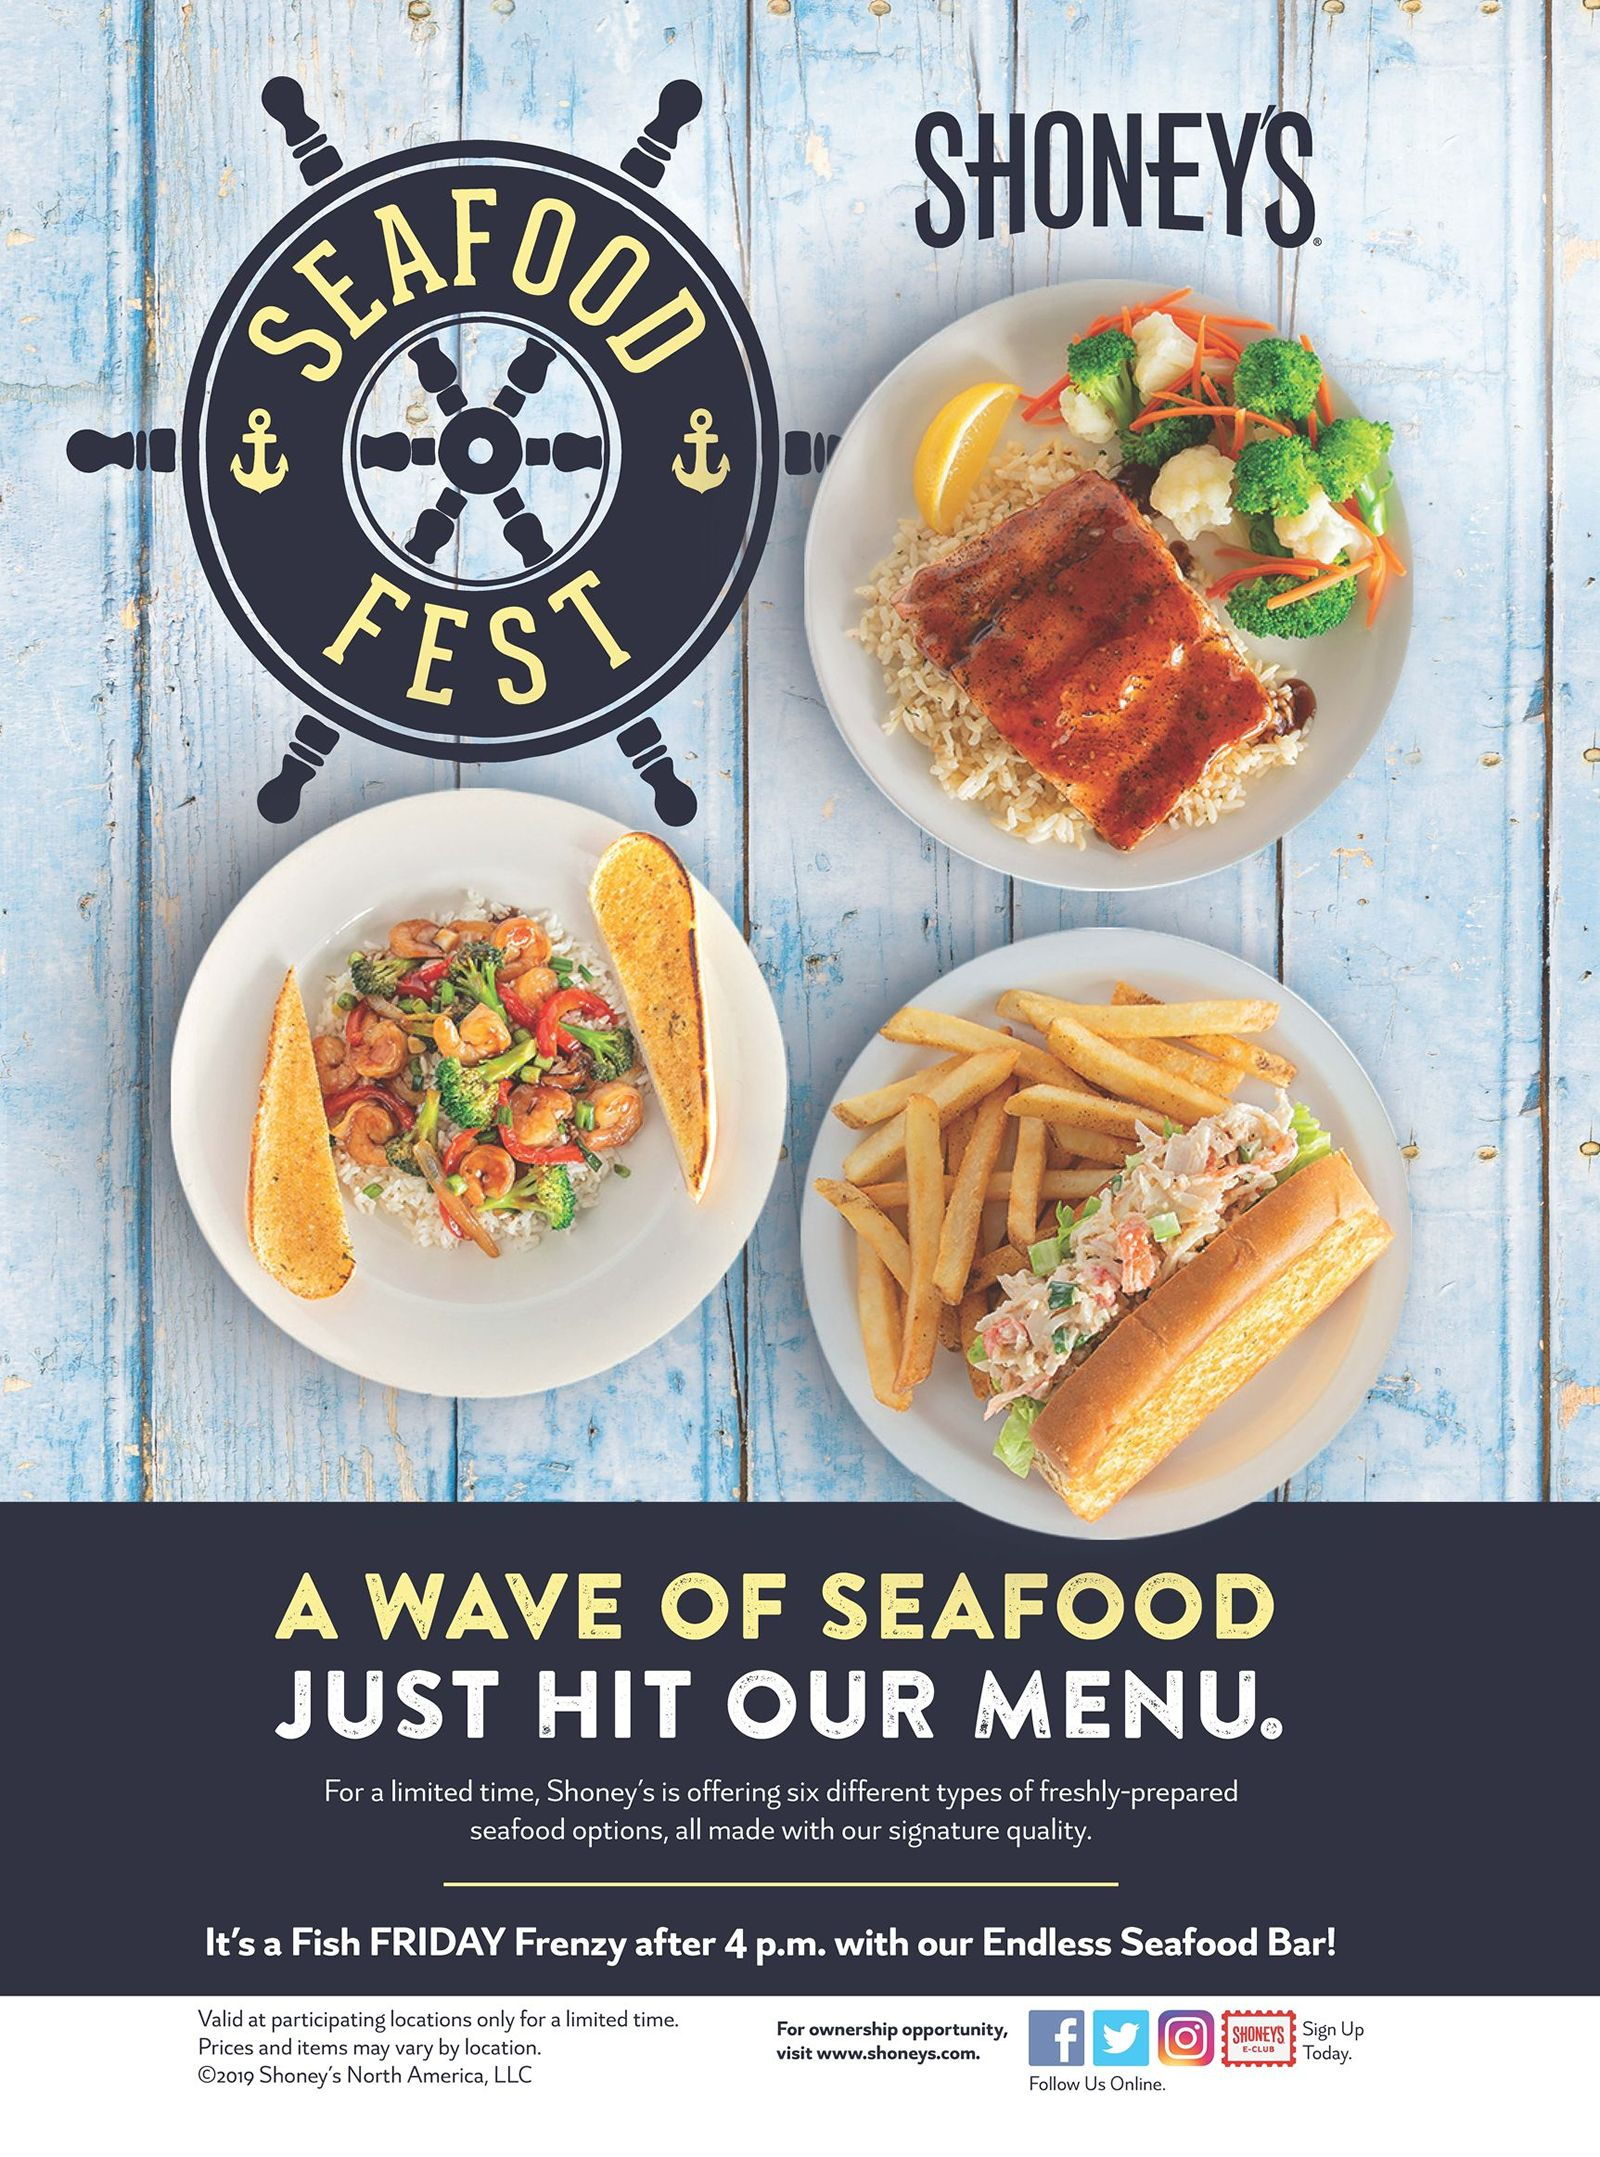 Shoney's Kicks Off Seafood Season with New Menu Items, Enhanced Seafood Fresh Food Bar